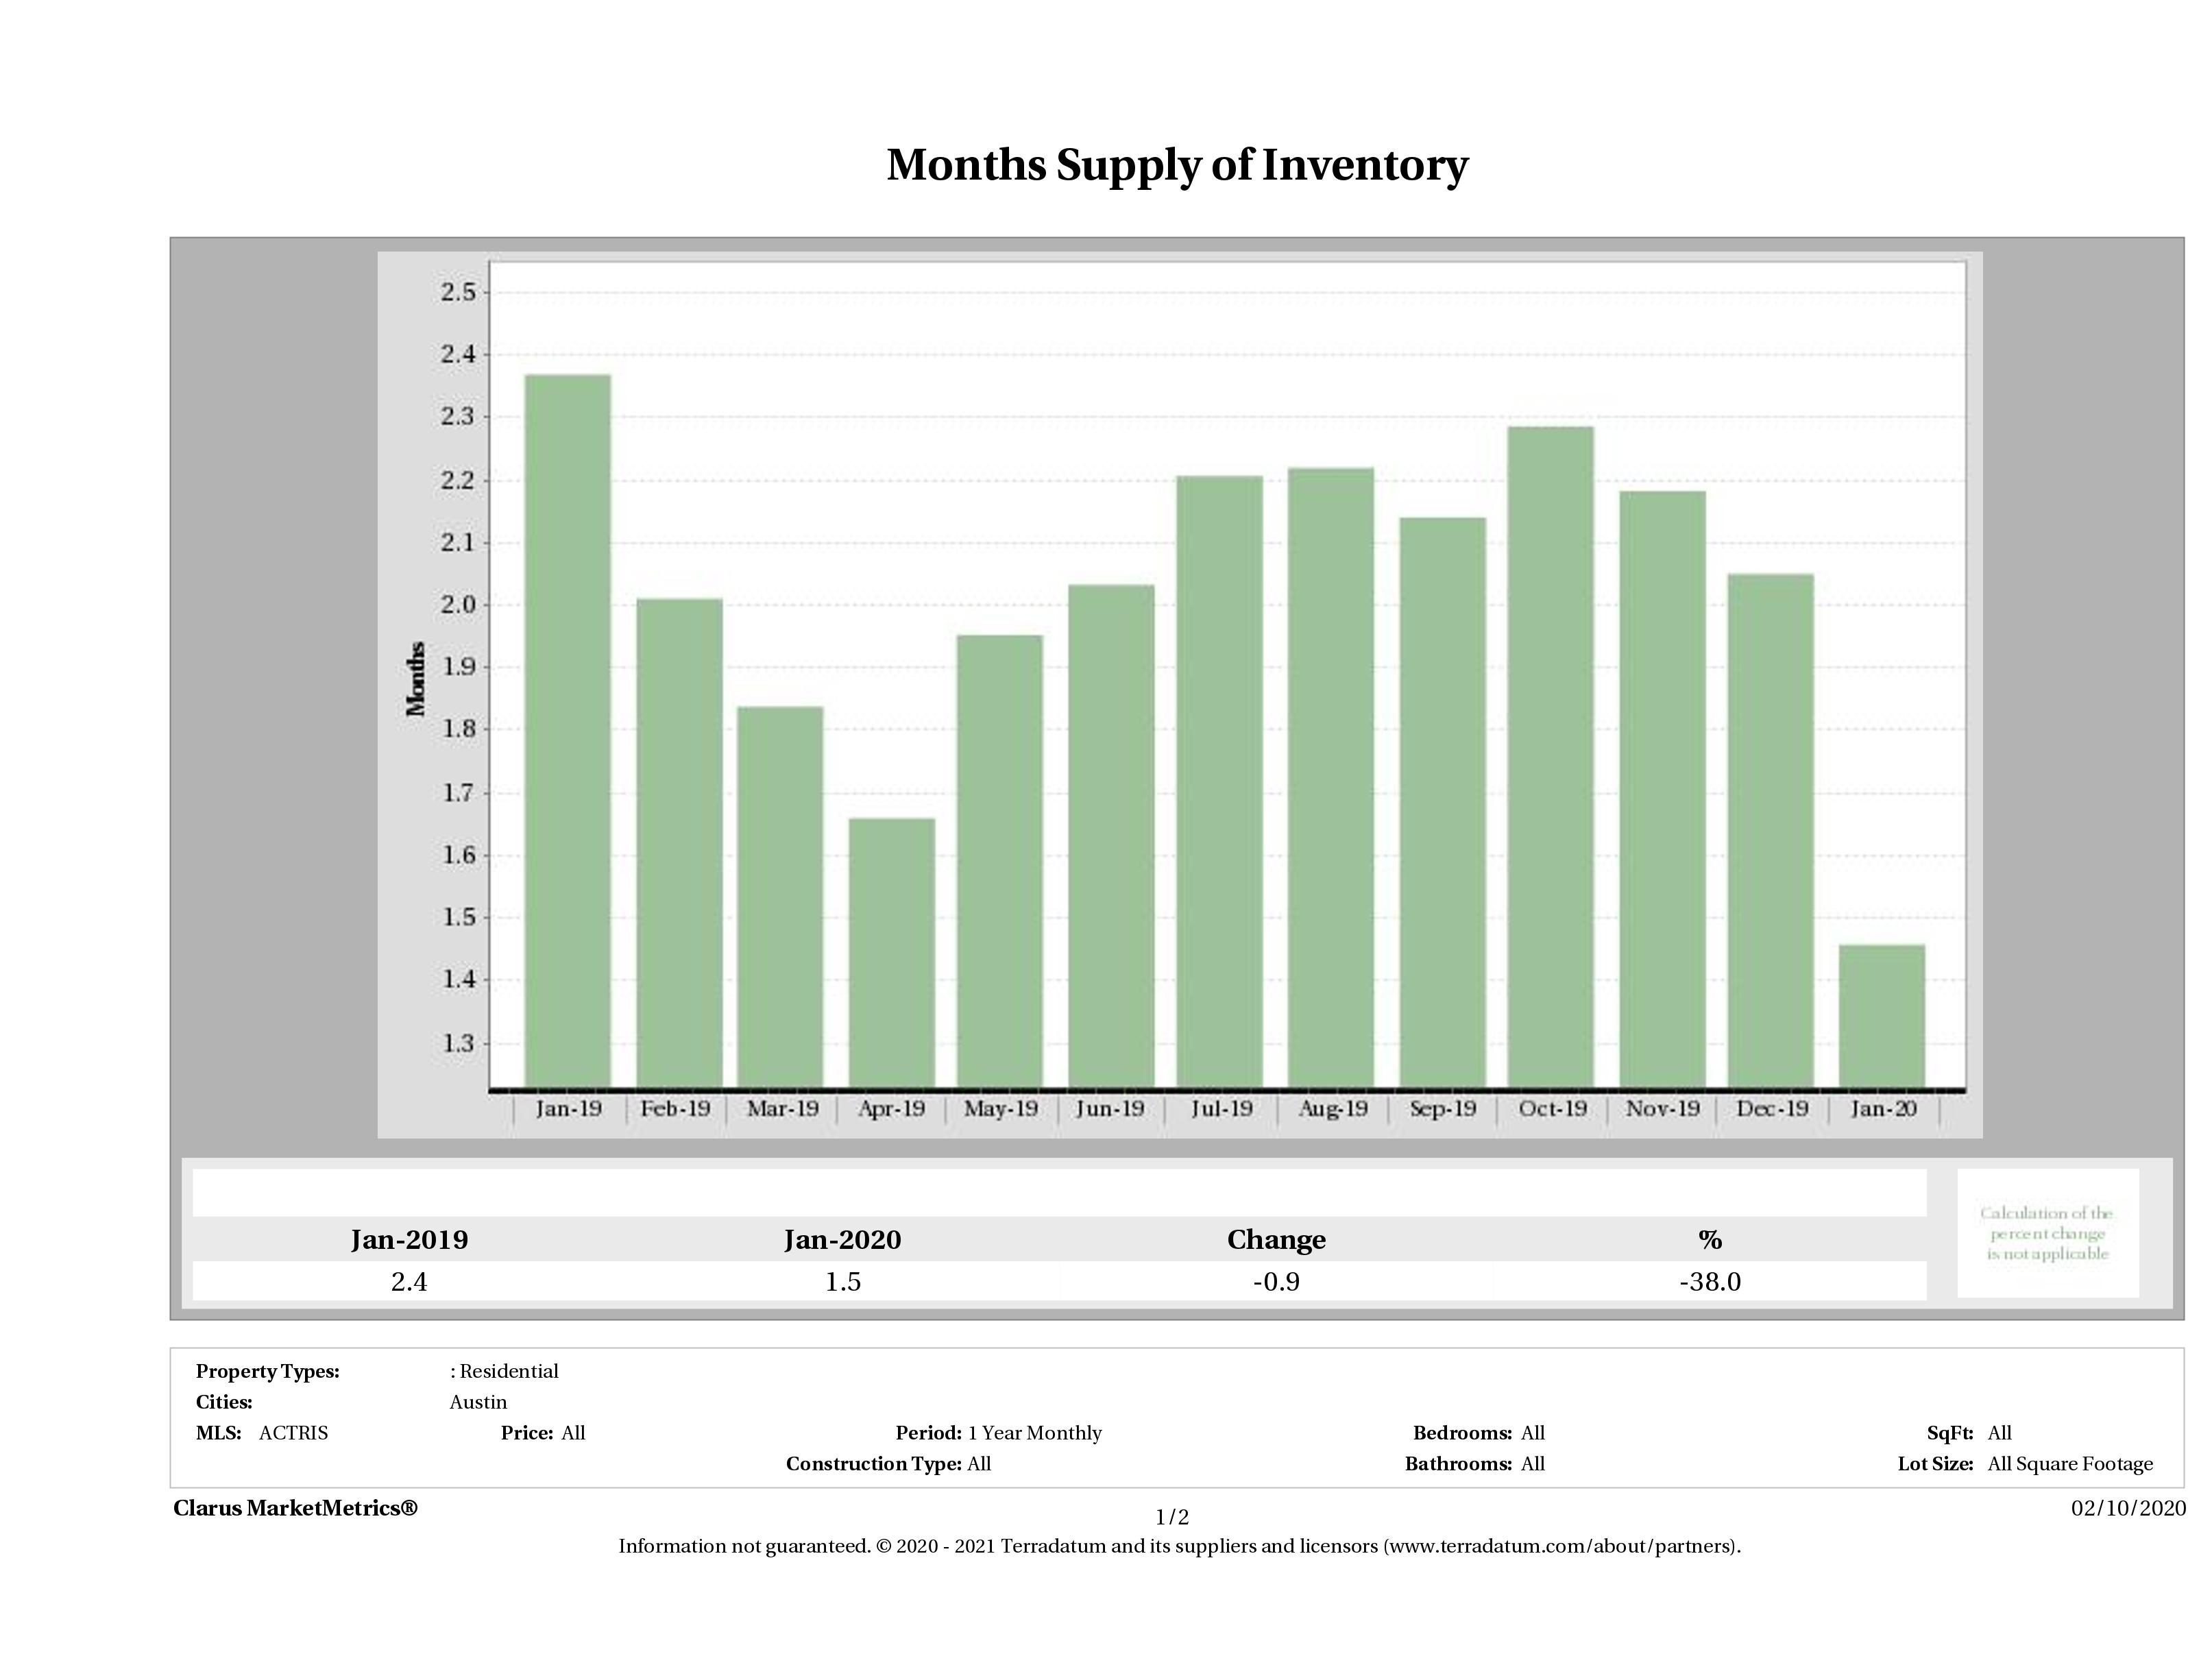 Austin single family home months inventory January 2020